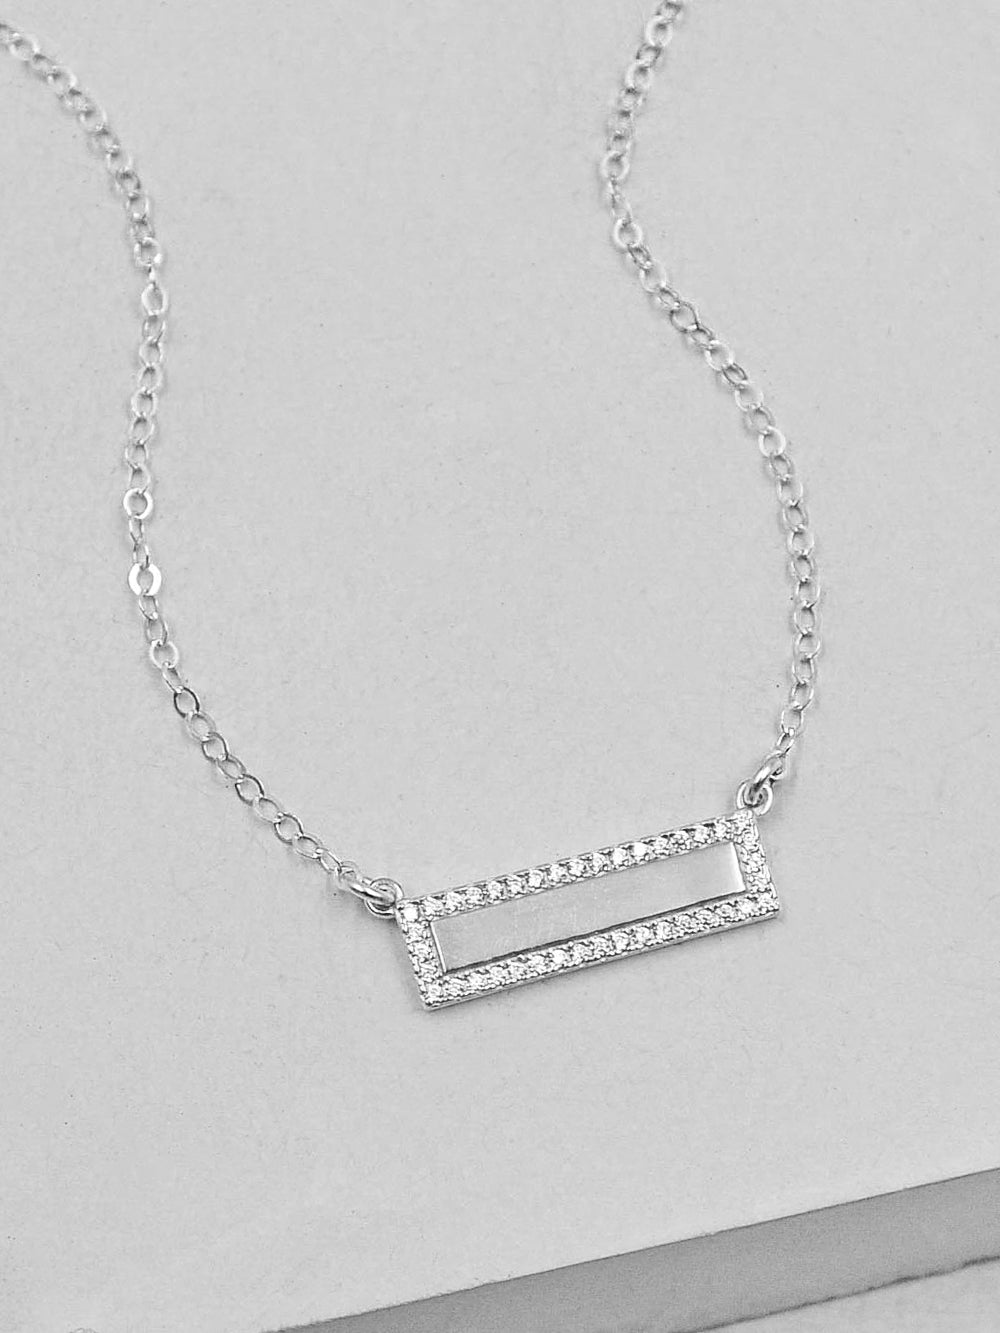 Silver Sparkle Bar Necklace by The Faint Hearted Jewelry